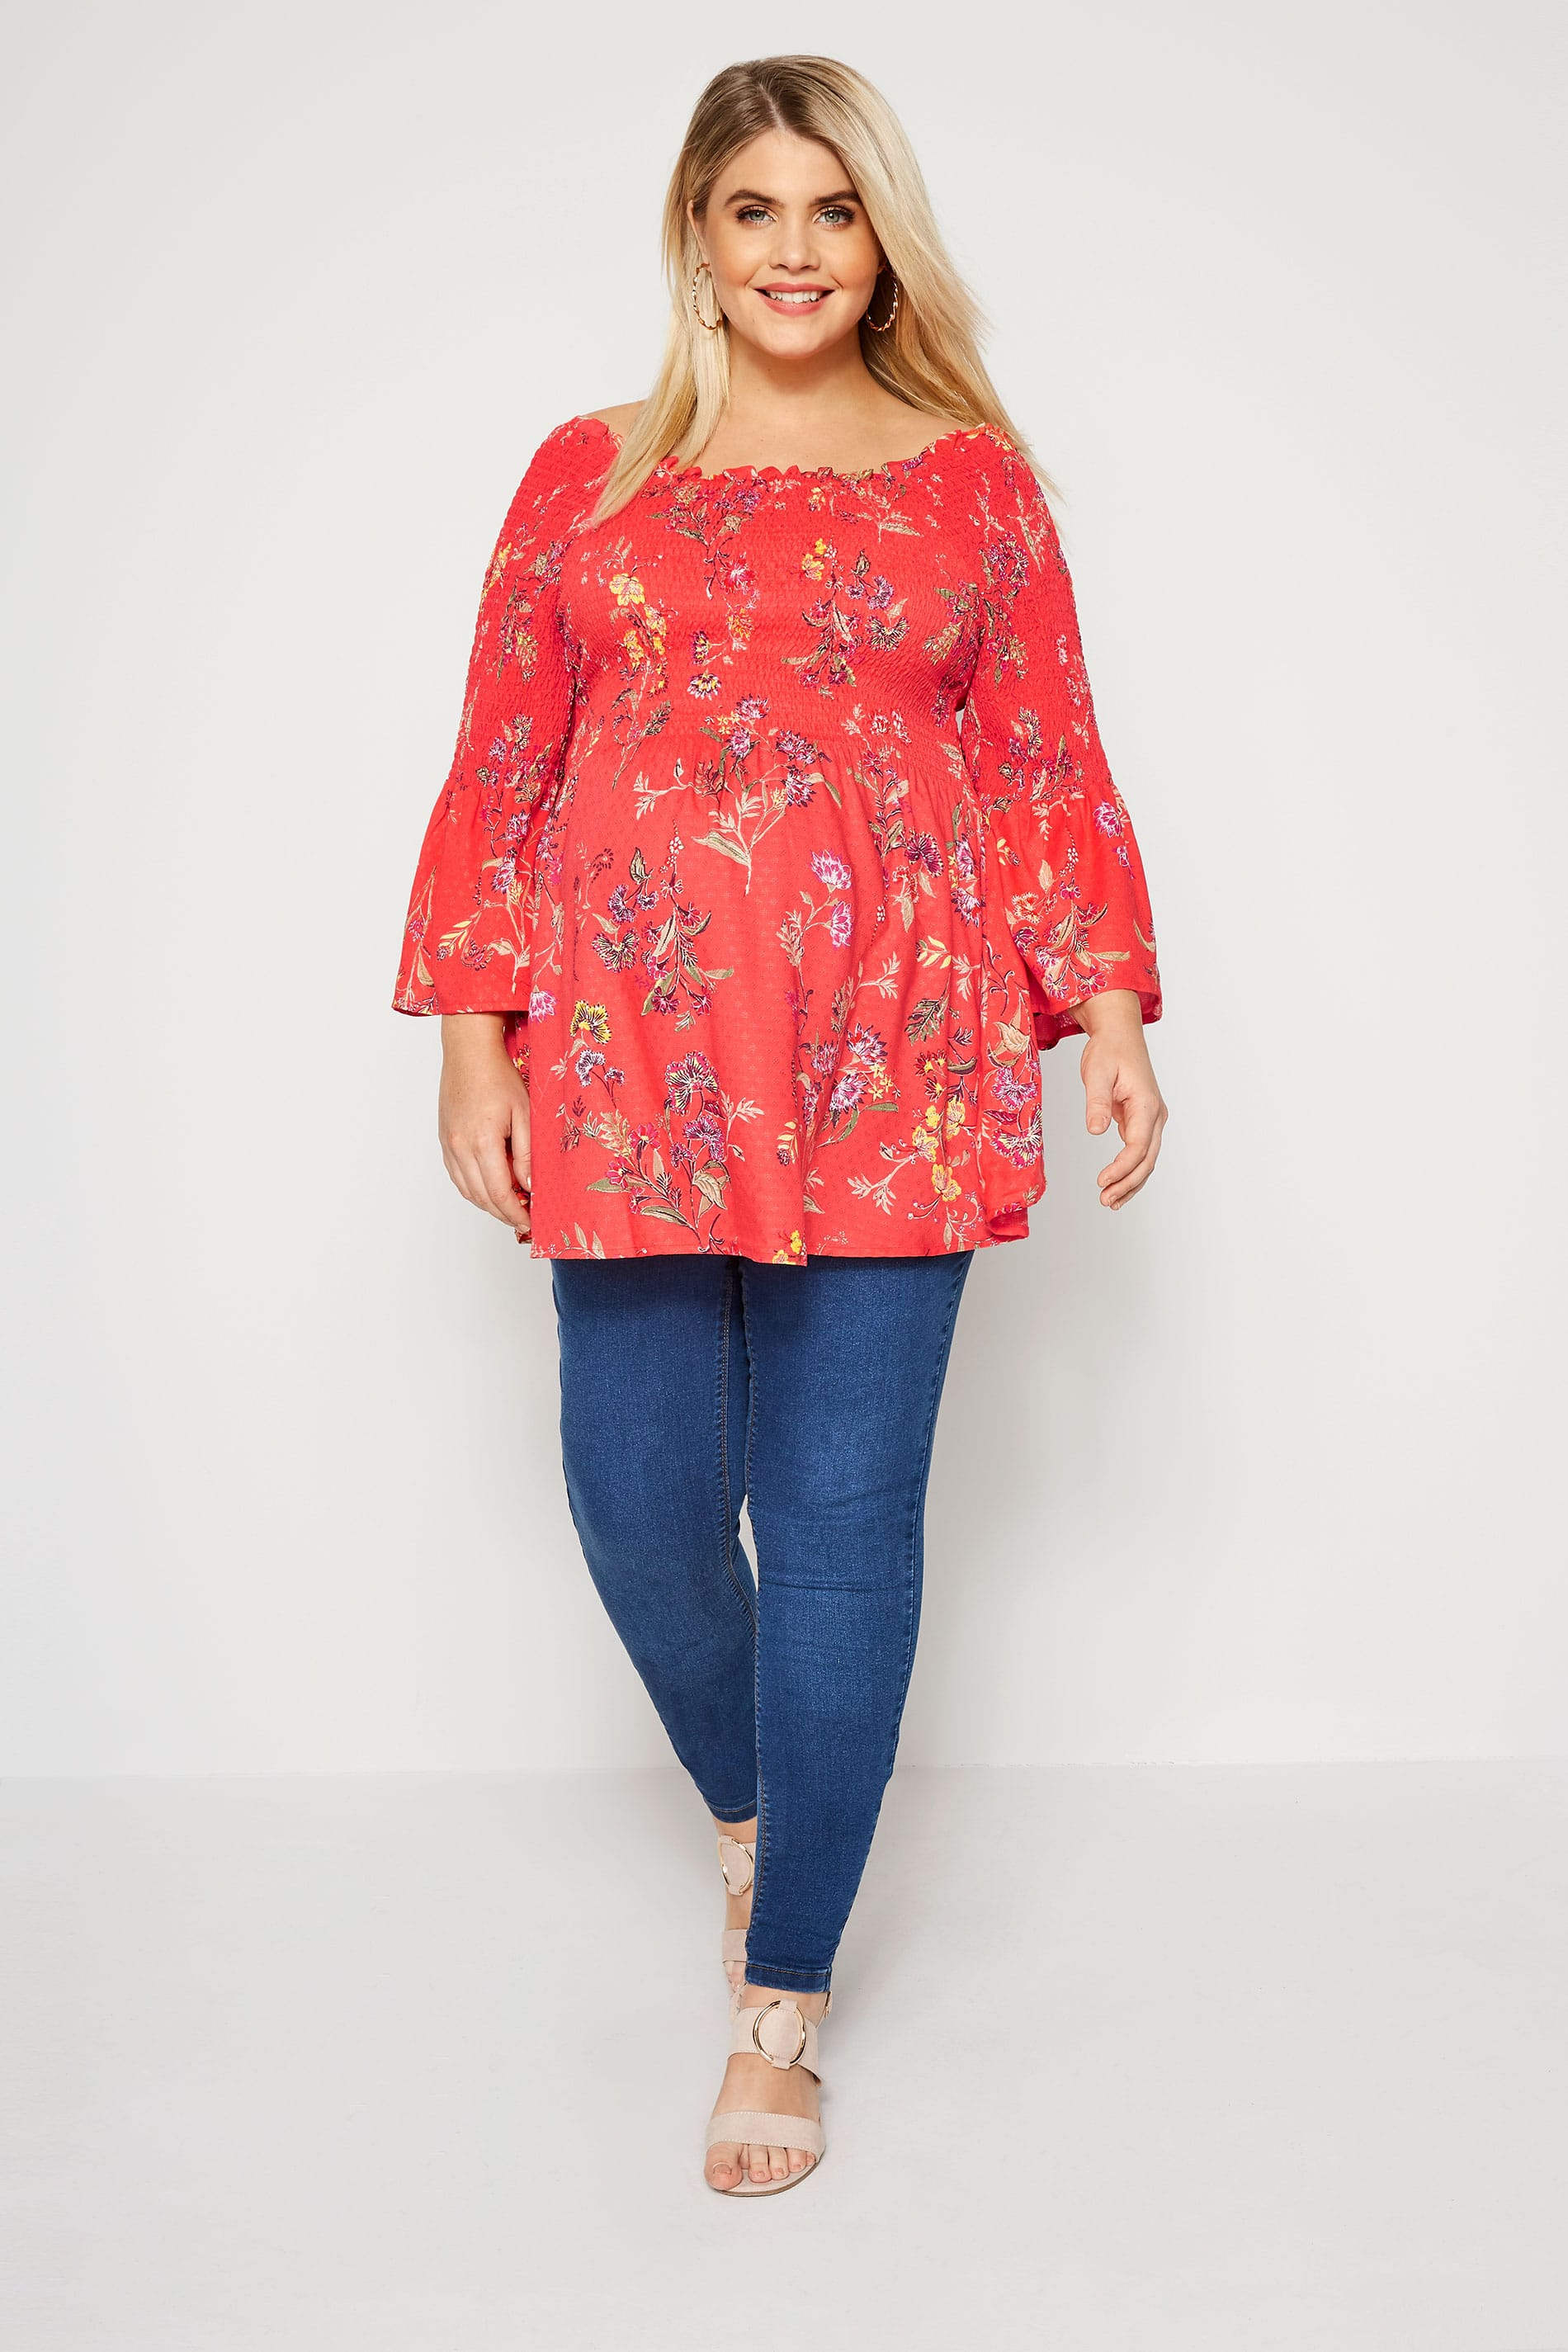 letter to hr bump it up koralowa bluzka ciążowa w kwiaty duże rozmiary 23212 | BUMP IT UP MATERNITY Coral Floral Shirred Top 158114 6a32